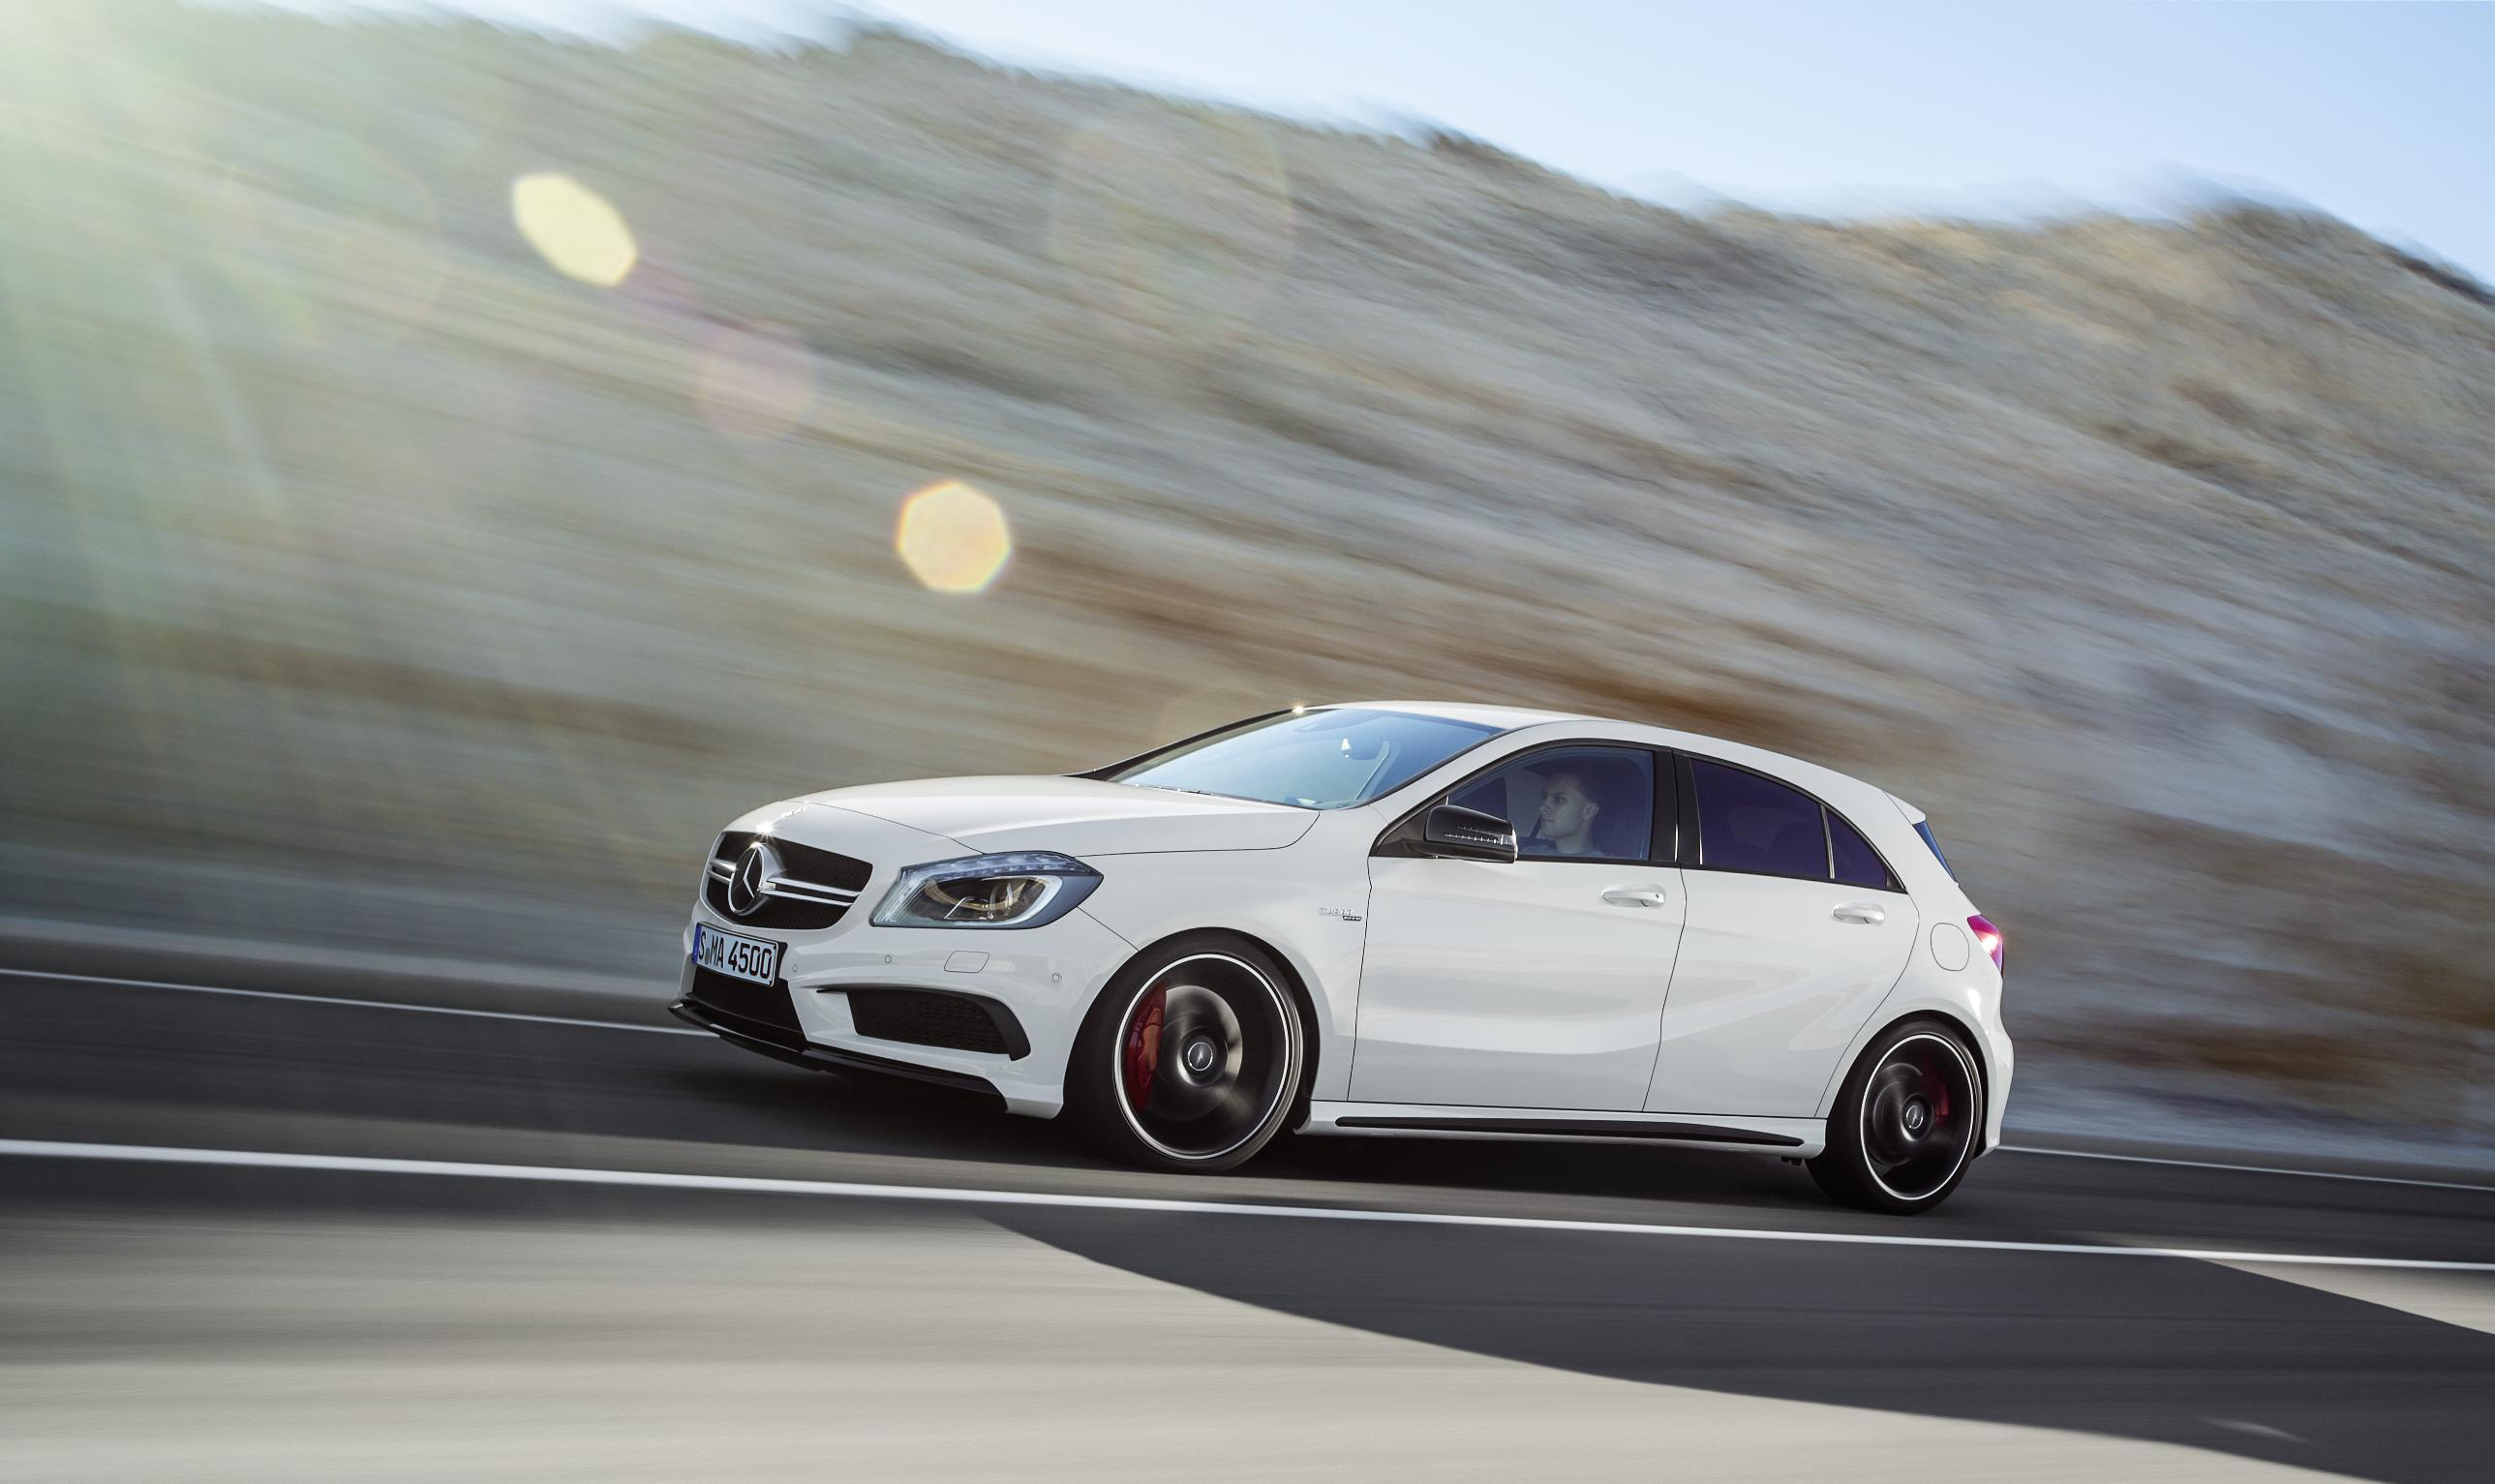 mercedes a45 amg 180 ch l pour une toile filante. Black Bedroom Furniture Sets. Home Design Ideas